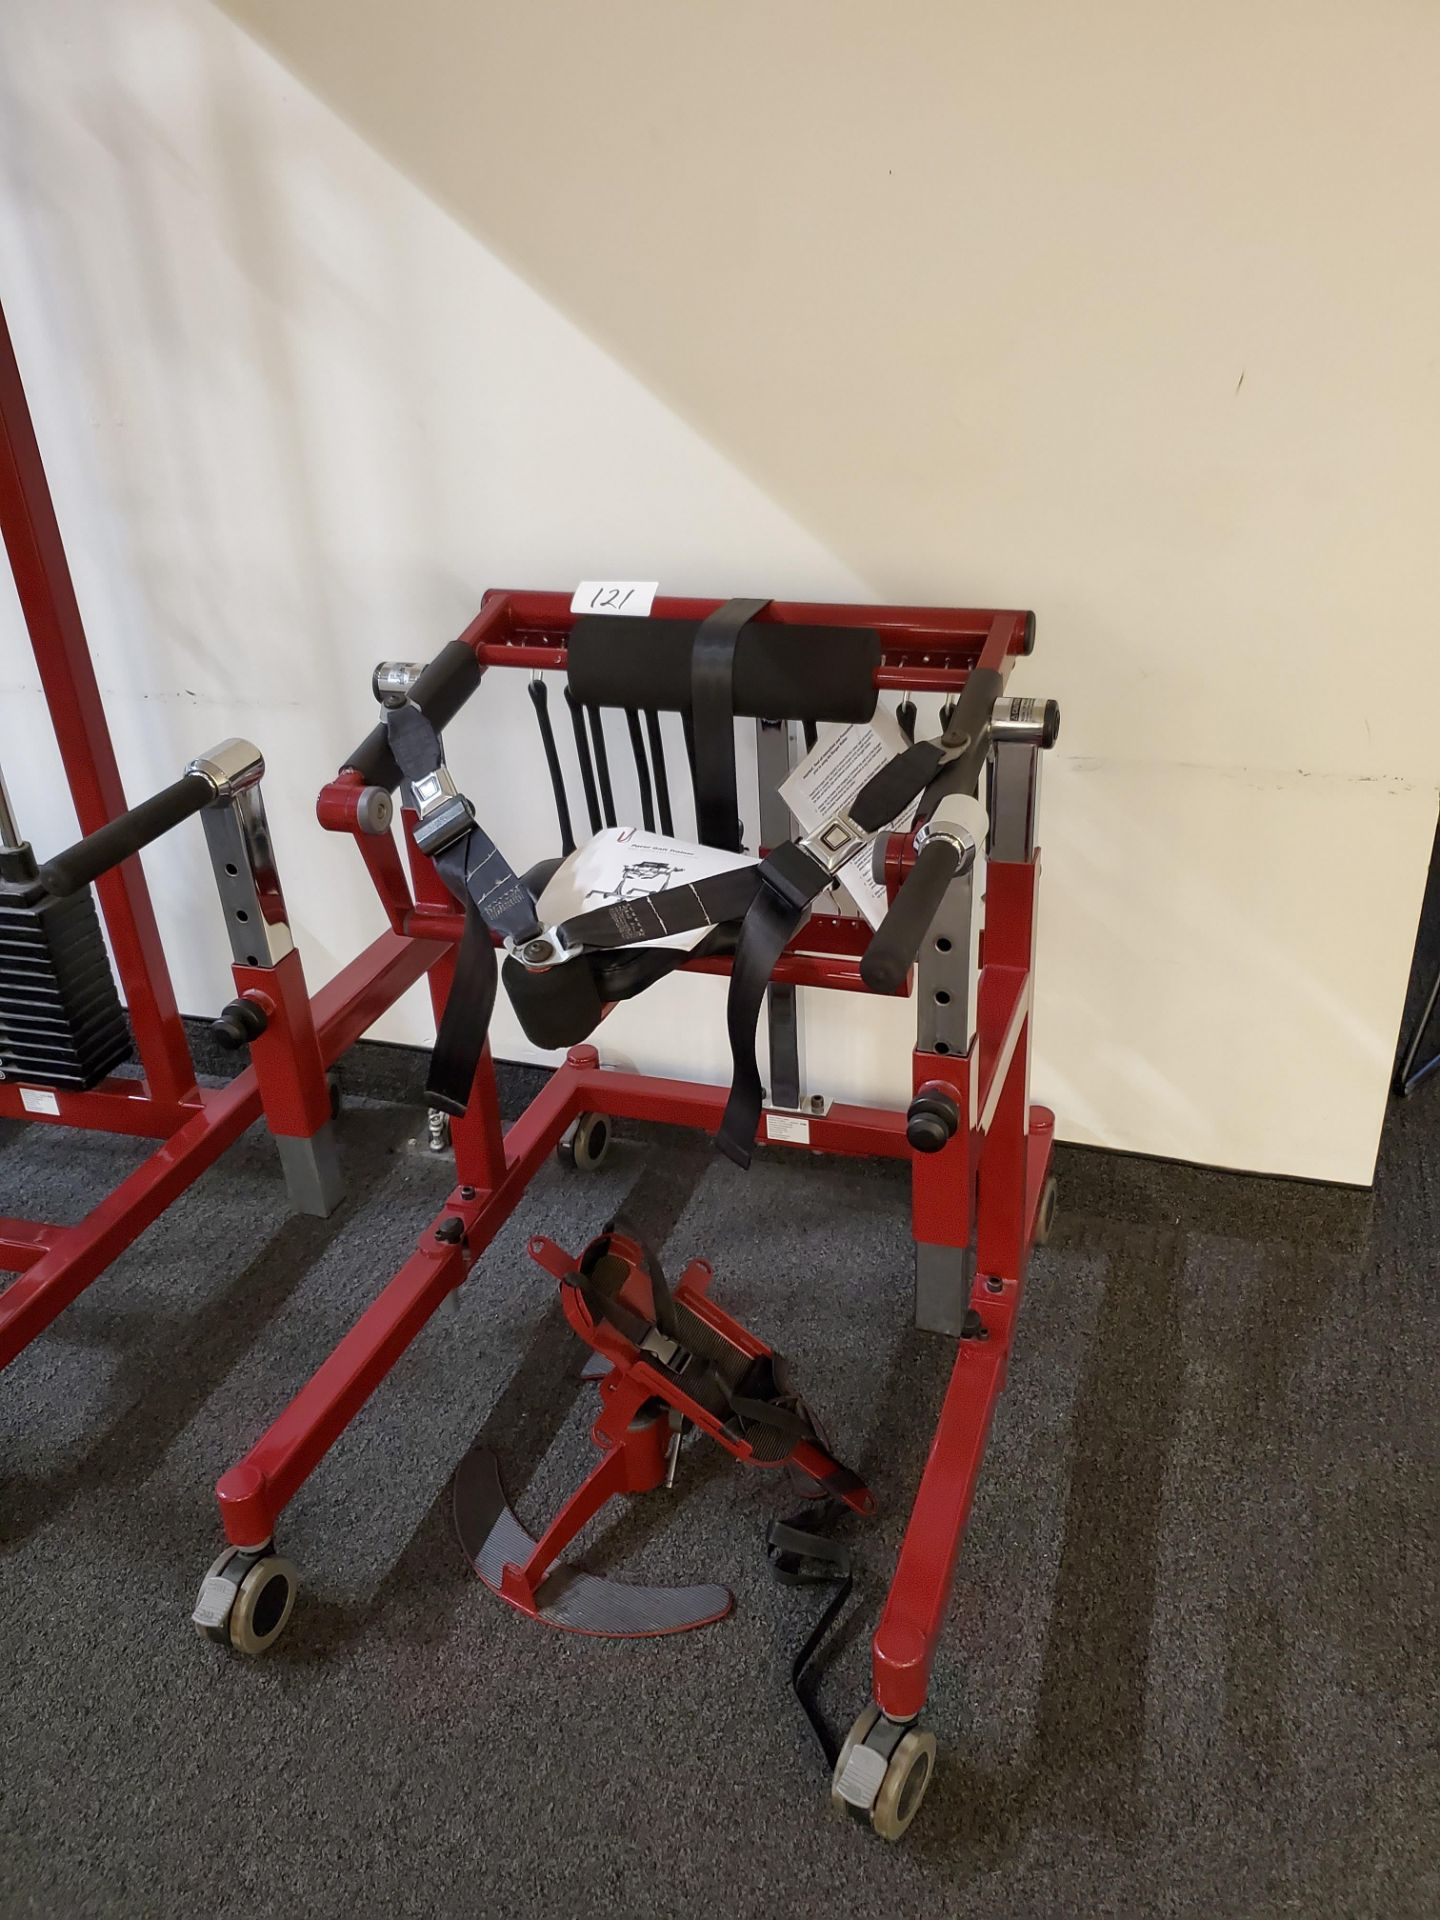 Lot 121 - NeuroGym E-BW-A Bungee Mobility Trainer